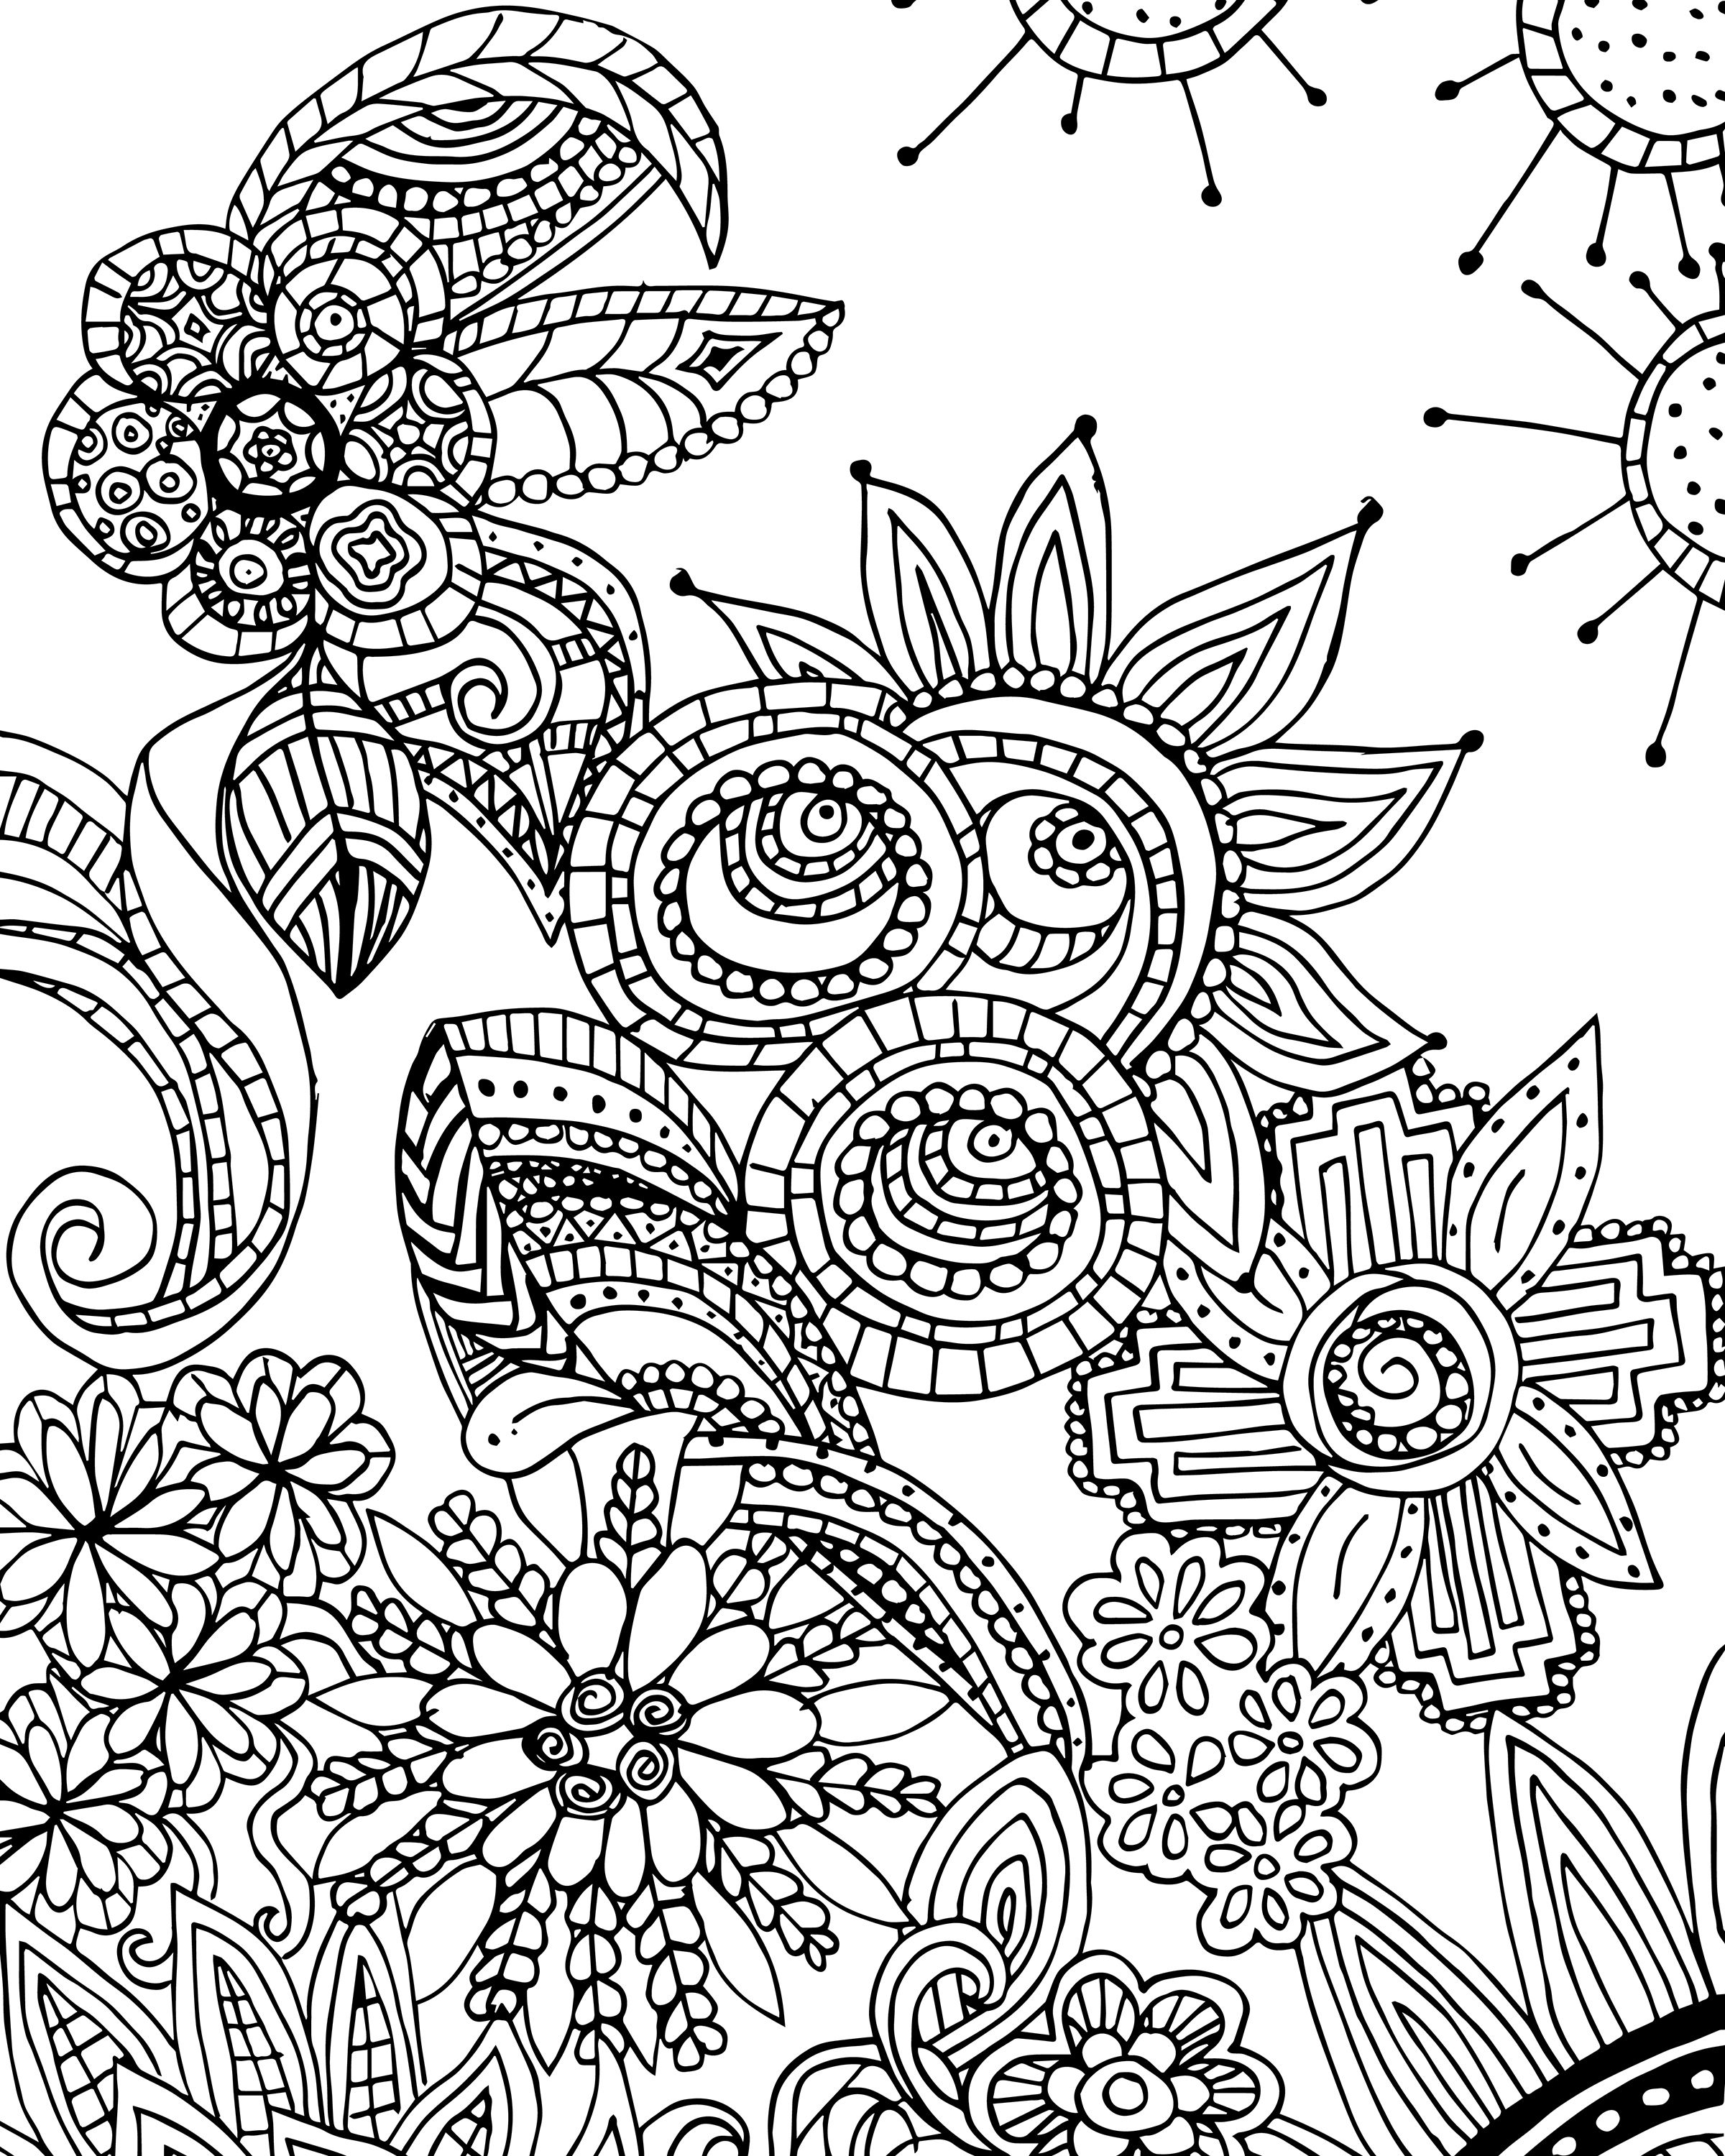 Zendoodle Coloring Pages Free Designs To Color 47 Coloring Sheets Voteforverde Com Flower